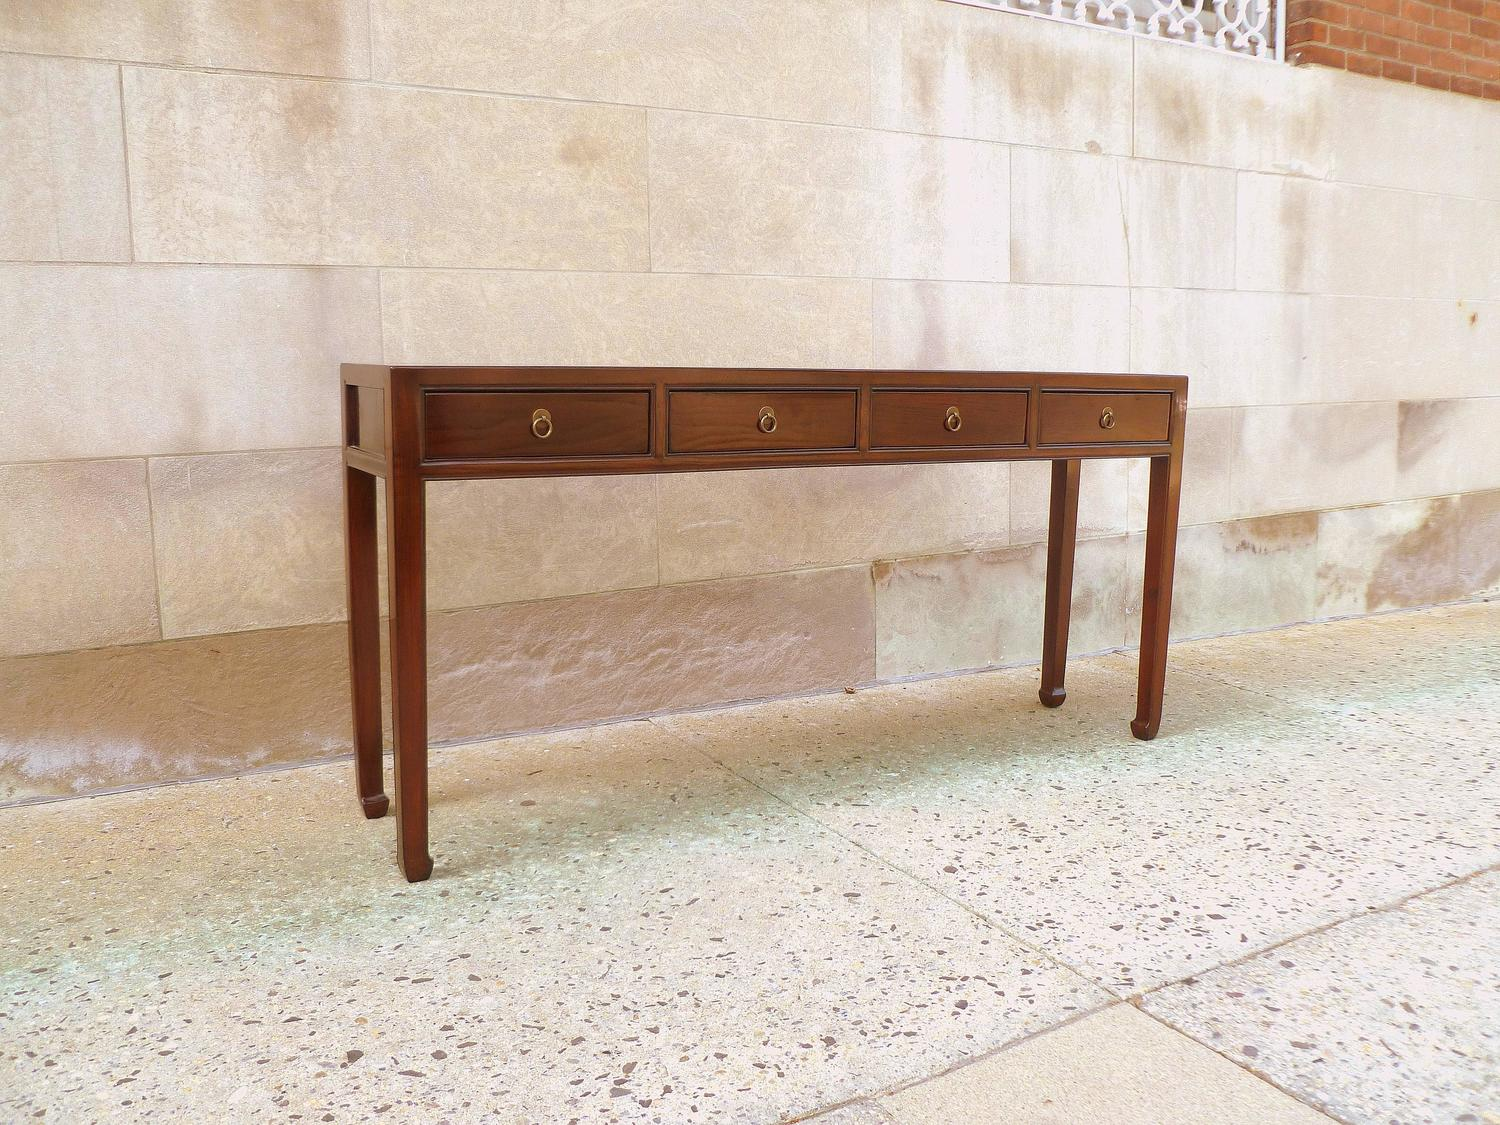 Marvelous photograph of Fine Ju Mu Wood Console Table with Drawers at 1stdibs with #6B3B24 color and 1500x1125 pixels